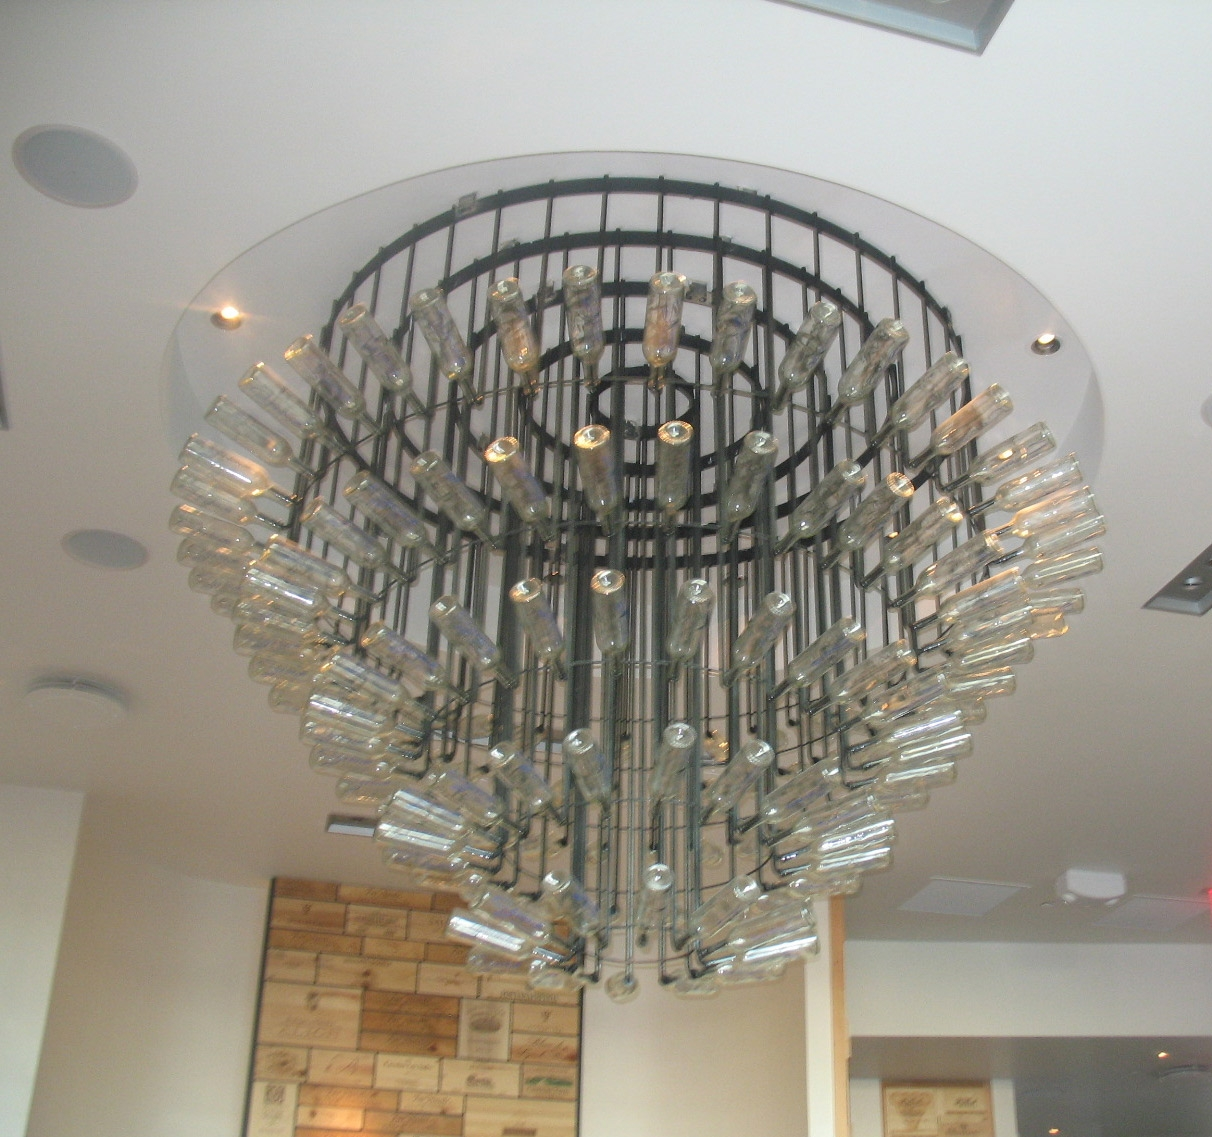 Wine Bottle Chandeliers At Their Best Lightopias Blog The Regarding Expensive Chandeliers (Image 15 of 15)